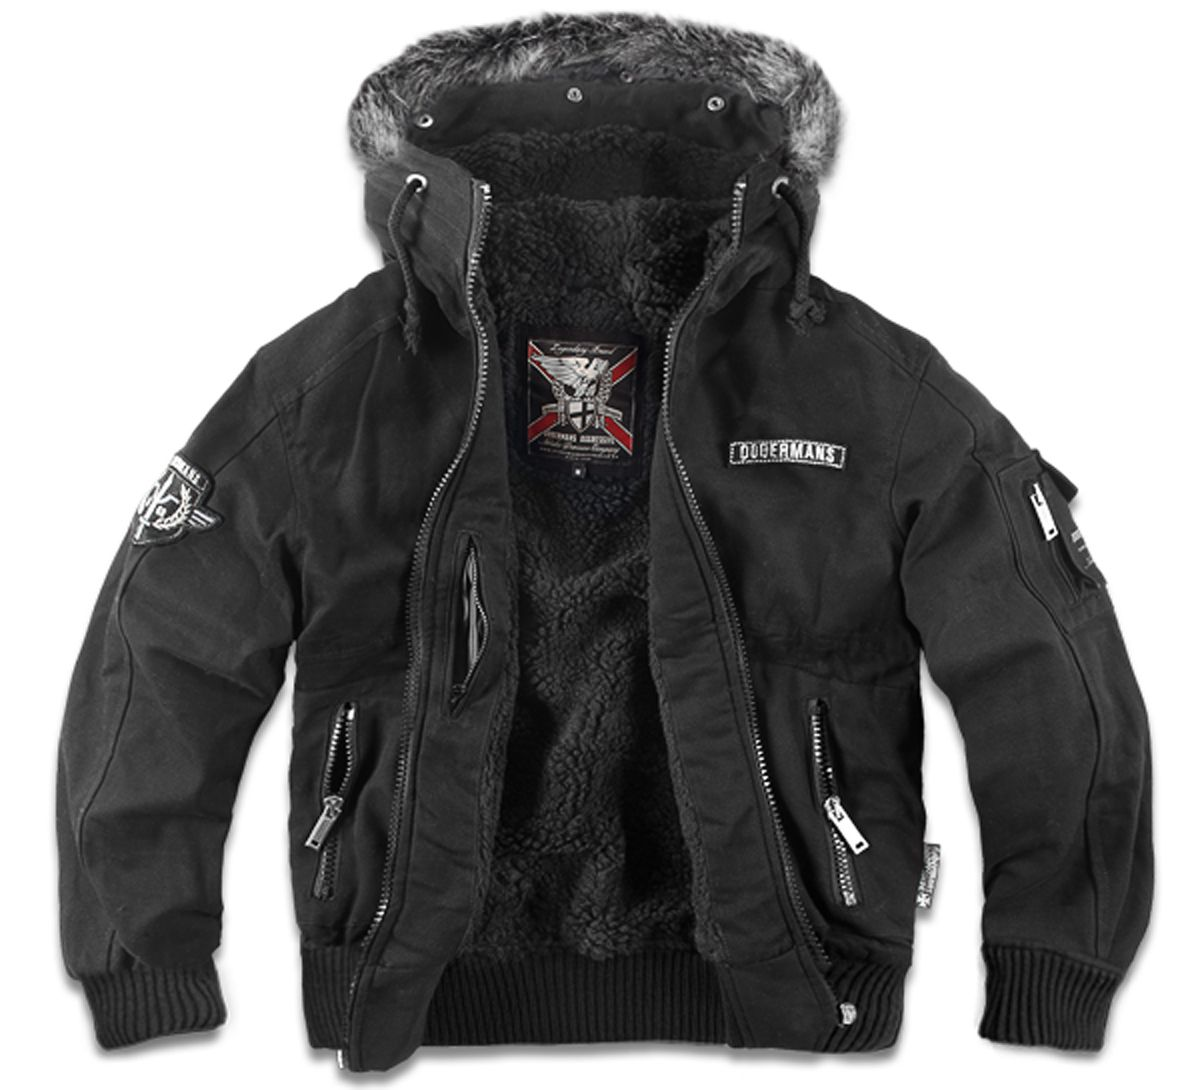 #Jacket from Dobermans Aggressive winter collection. Made from windproof  material keeping warmth. Equipped